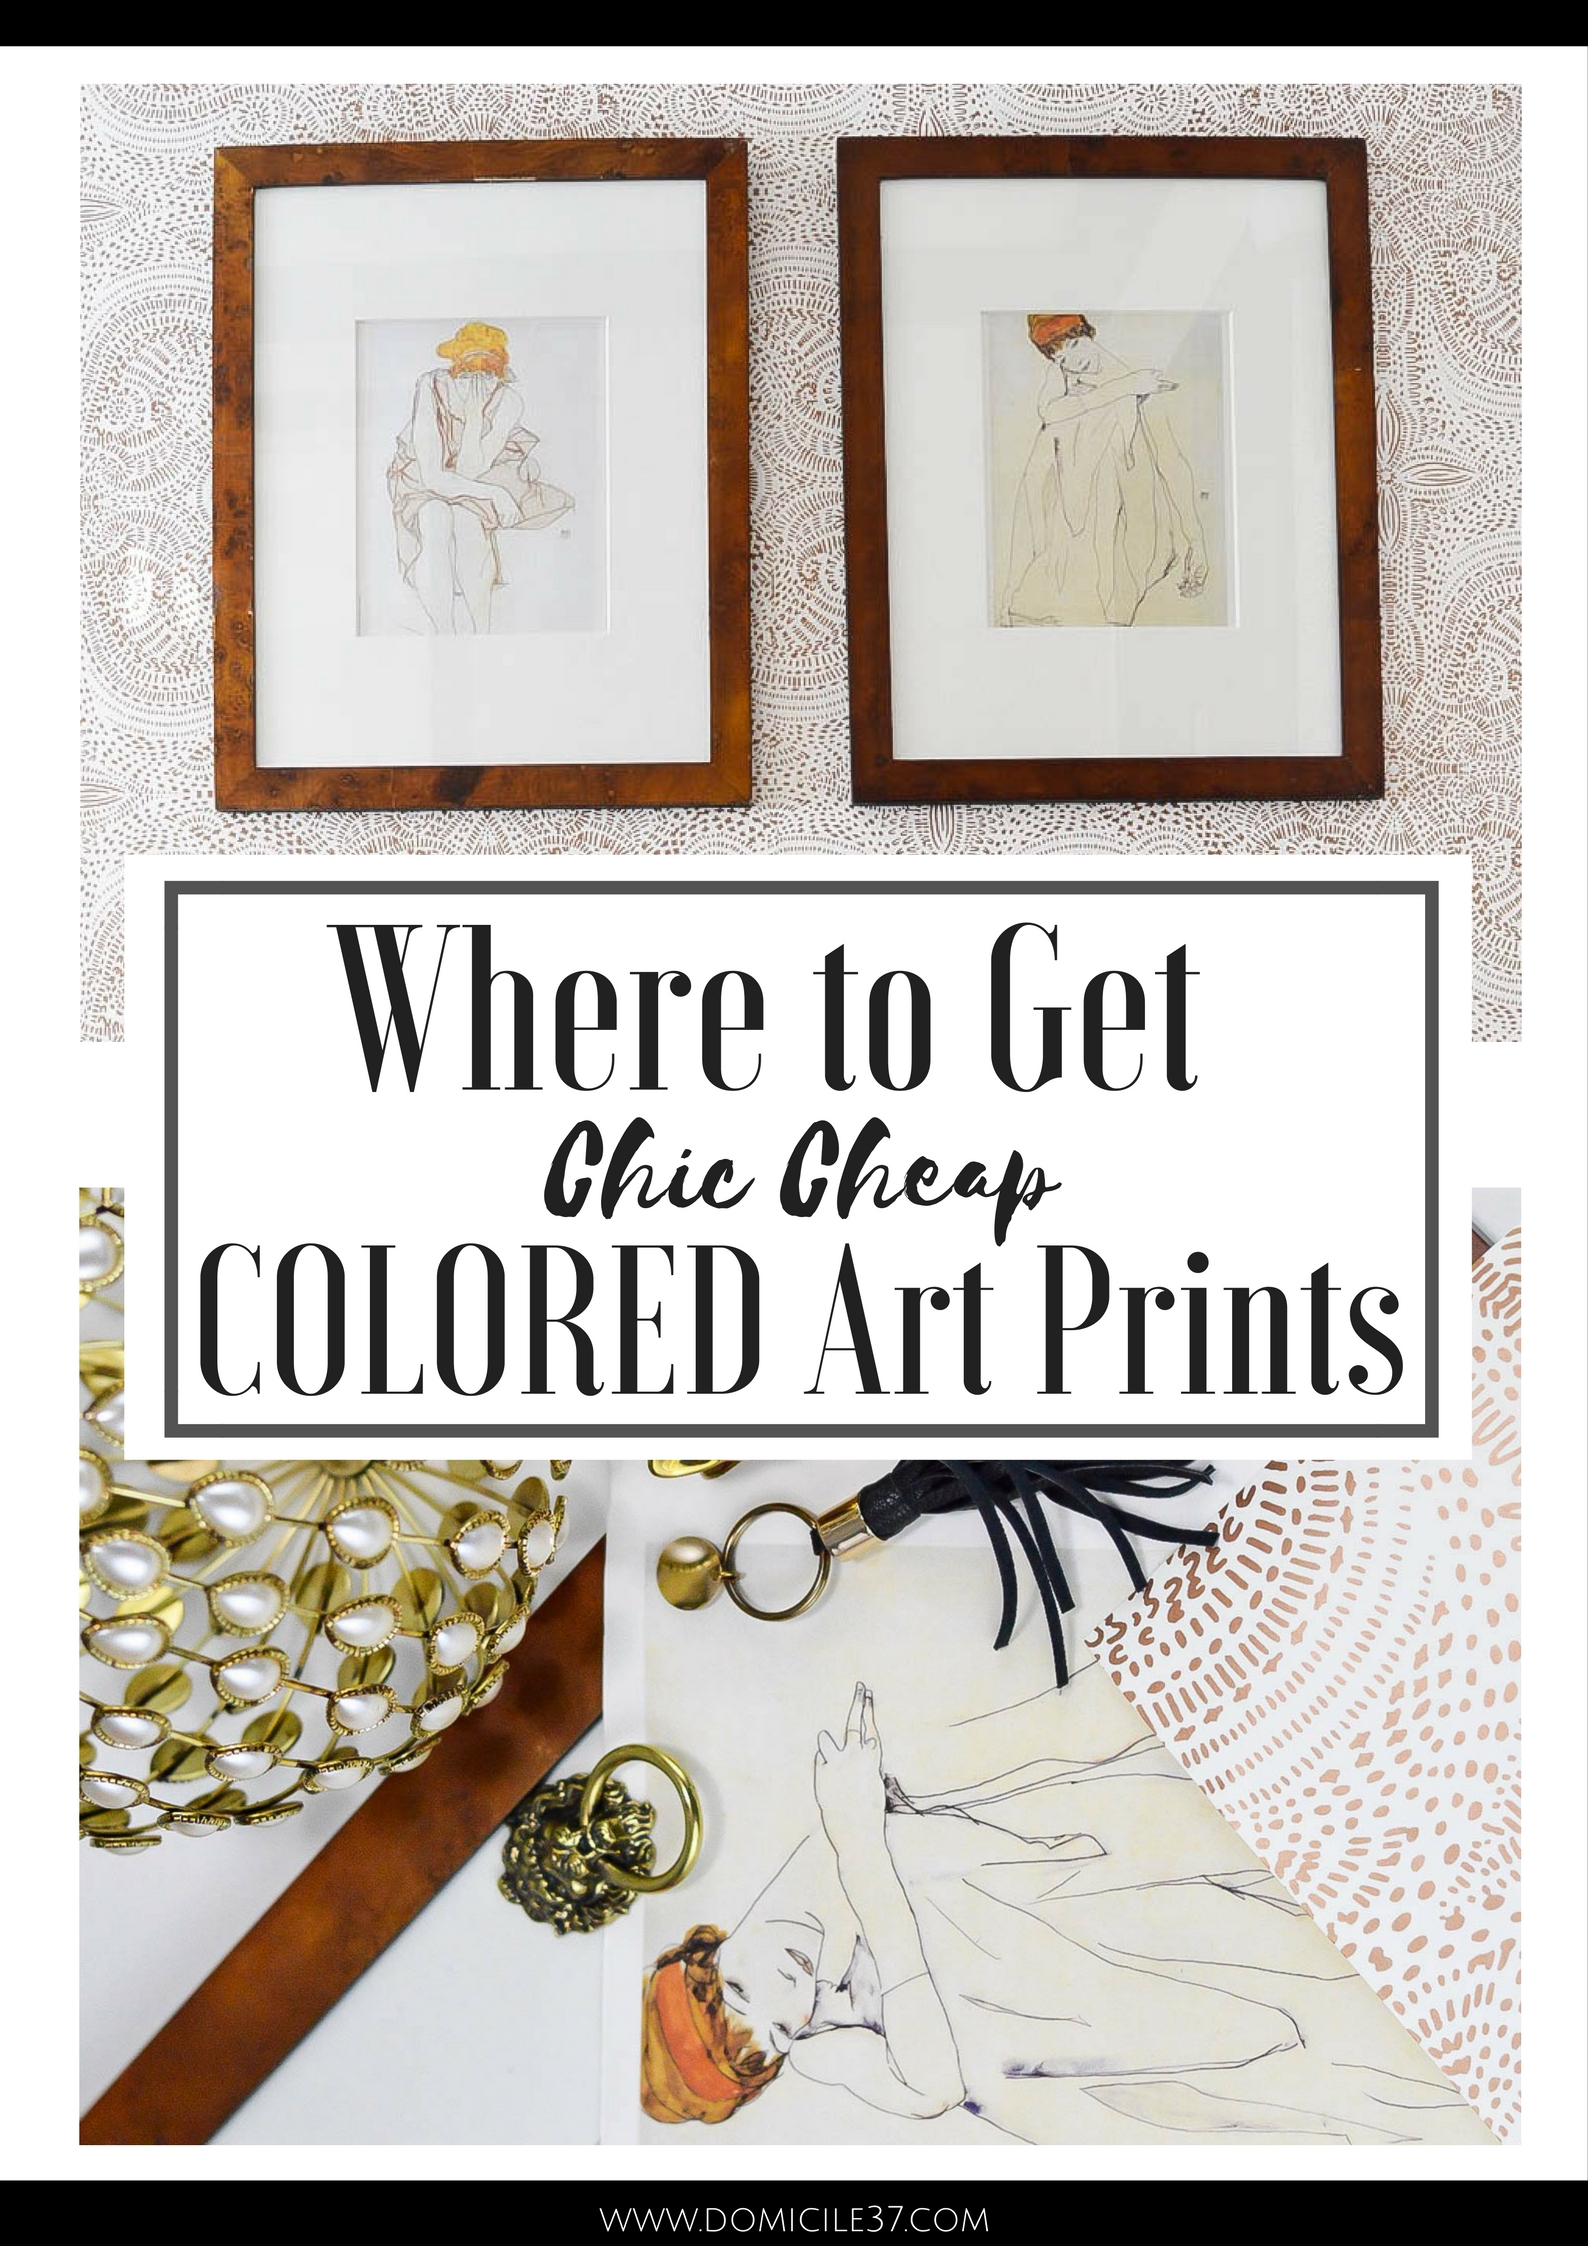 Sharing my source on where to get chic cheap colored art prints | DIY framed calendar art | How to Frame Calendar Art